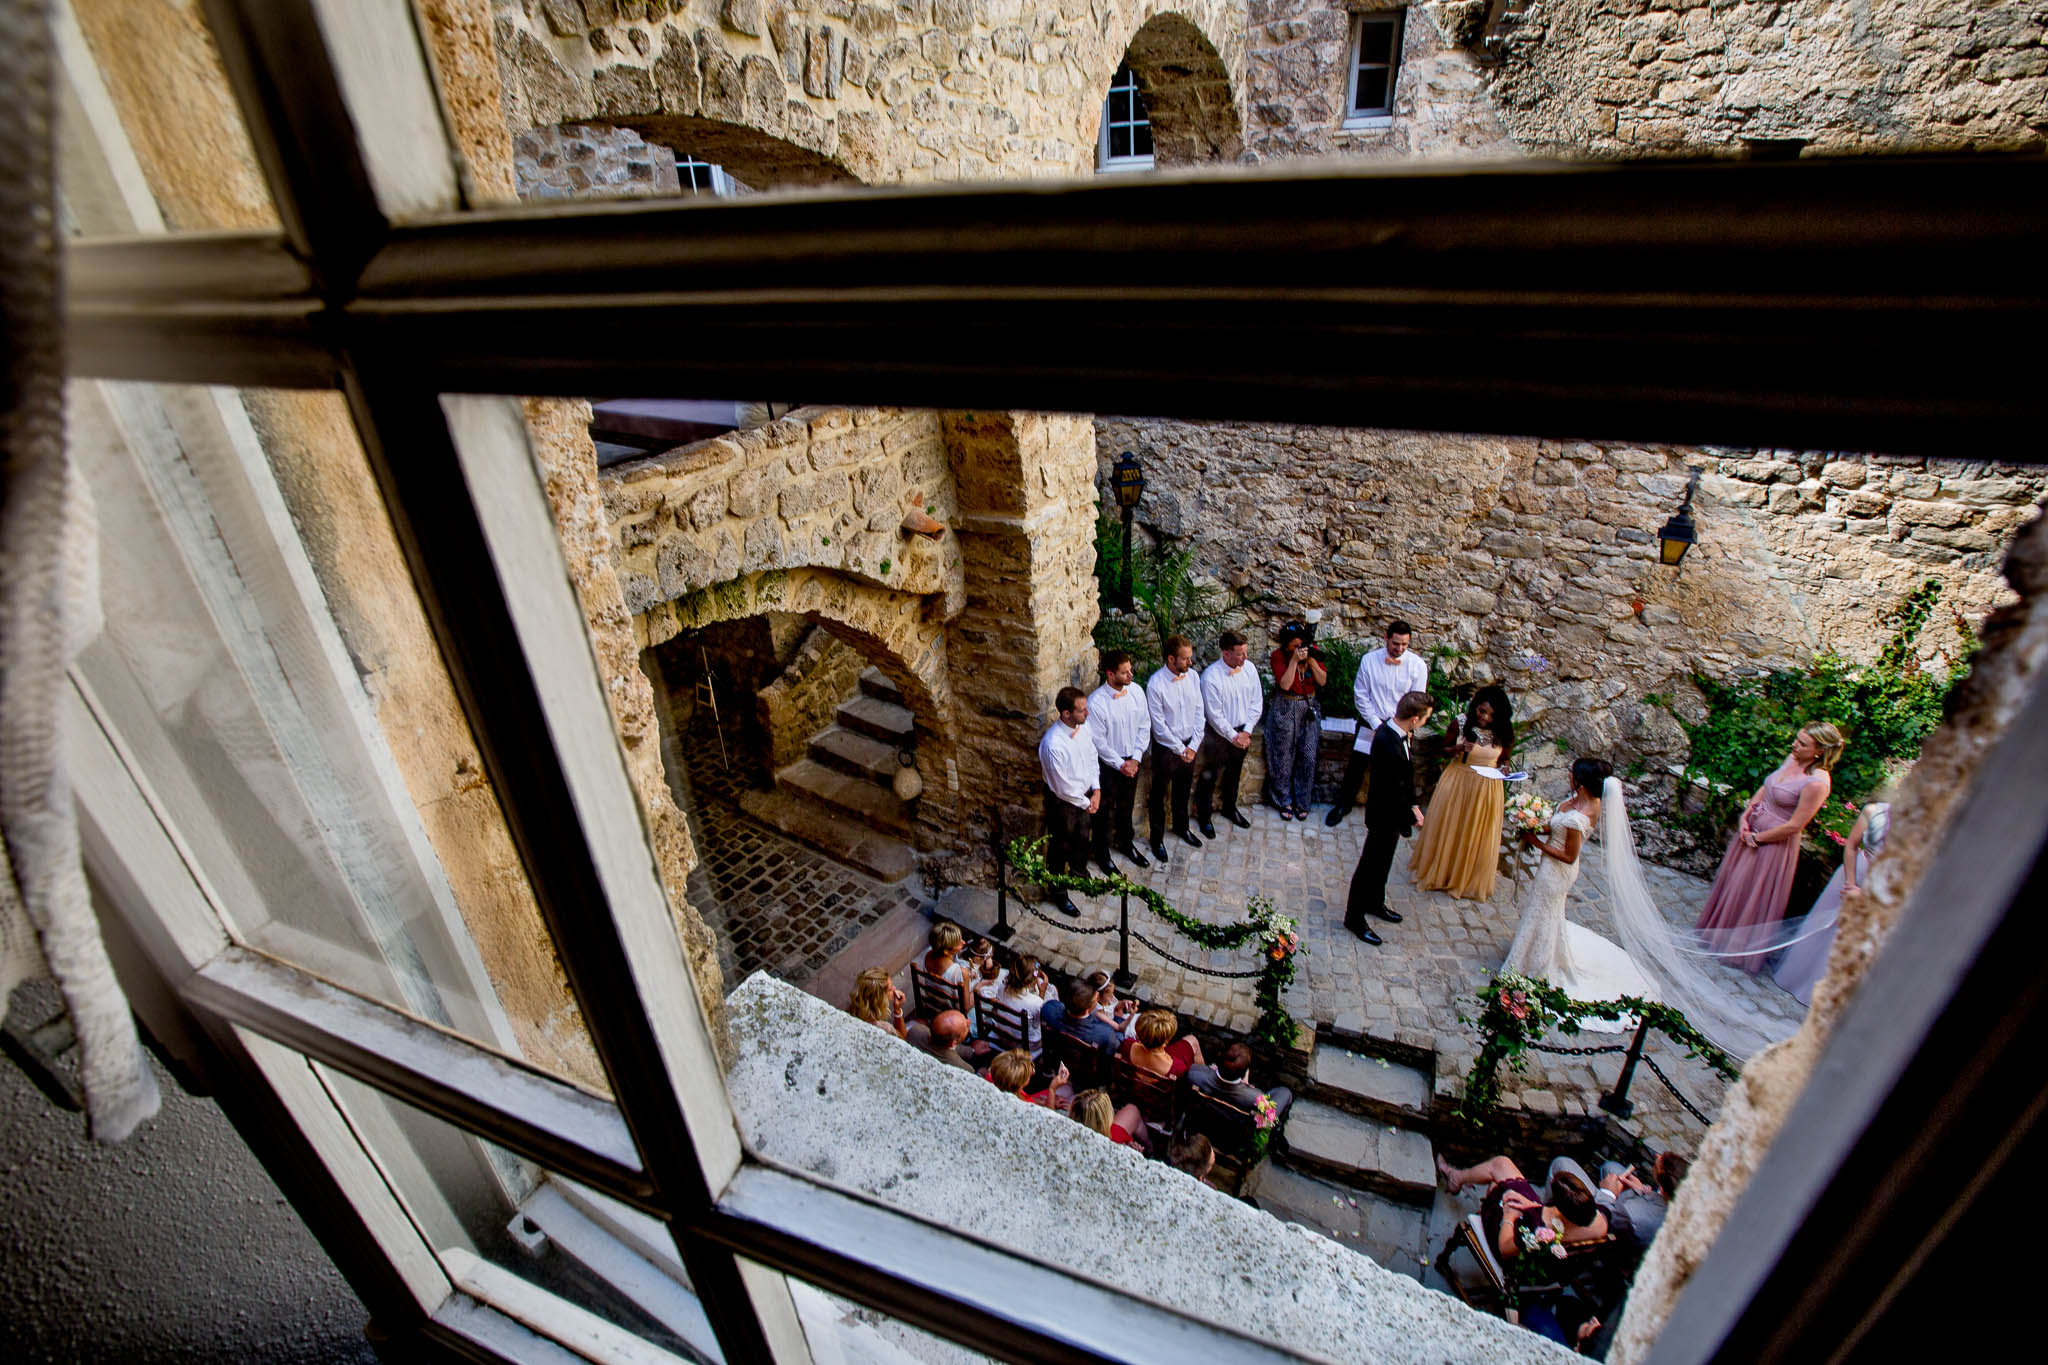 View of wedding ceremony in Cirque de Navacelles outside Montpellier France